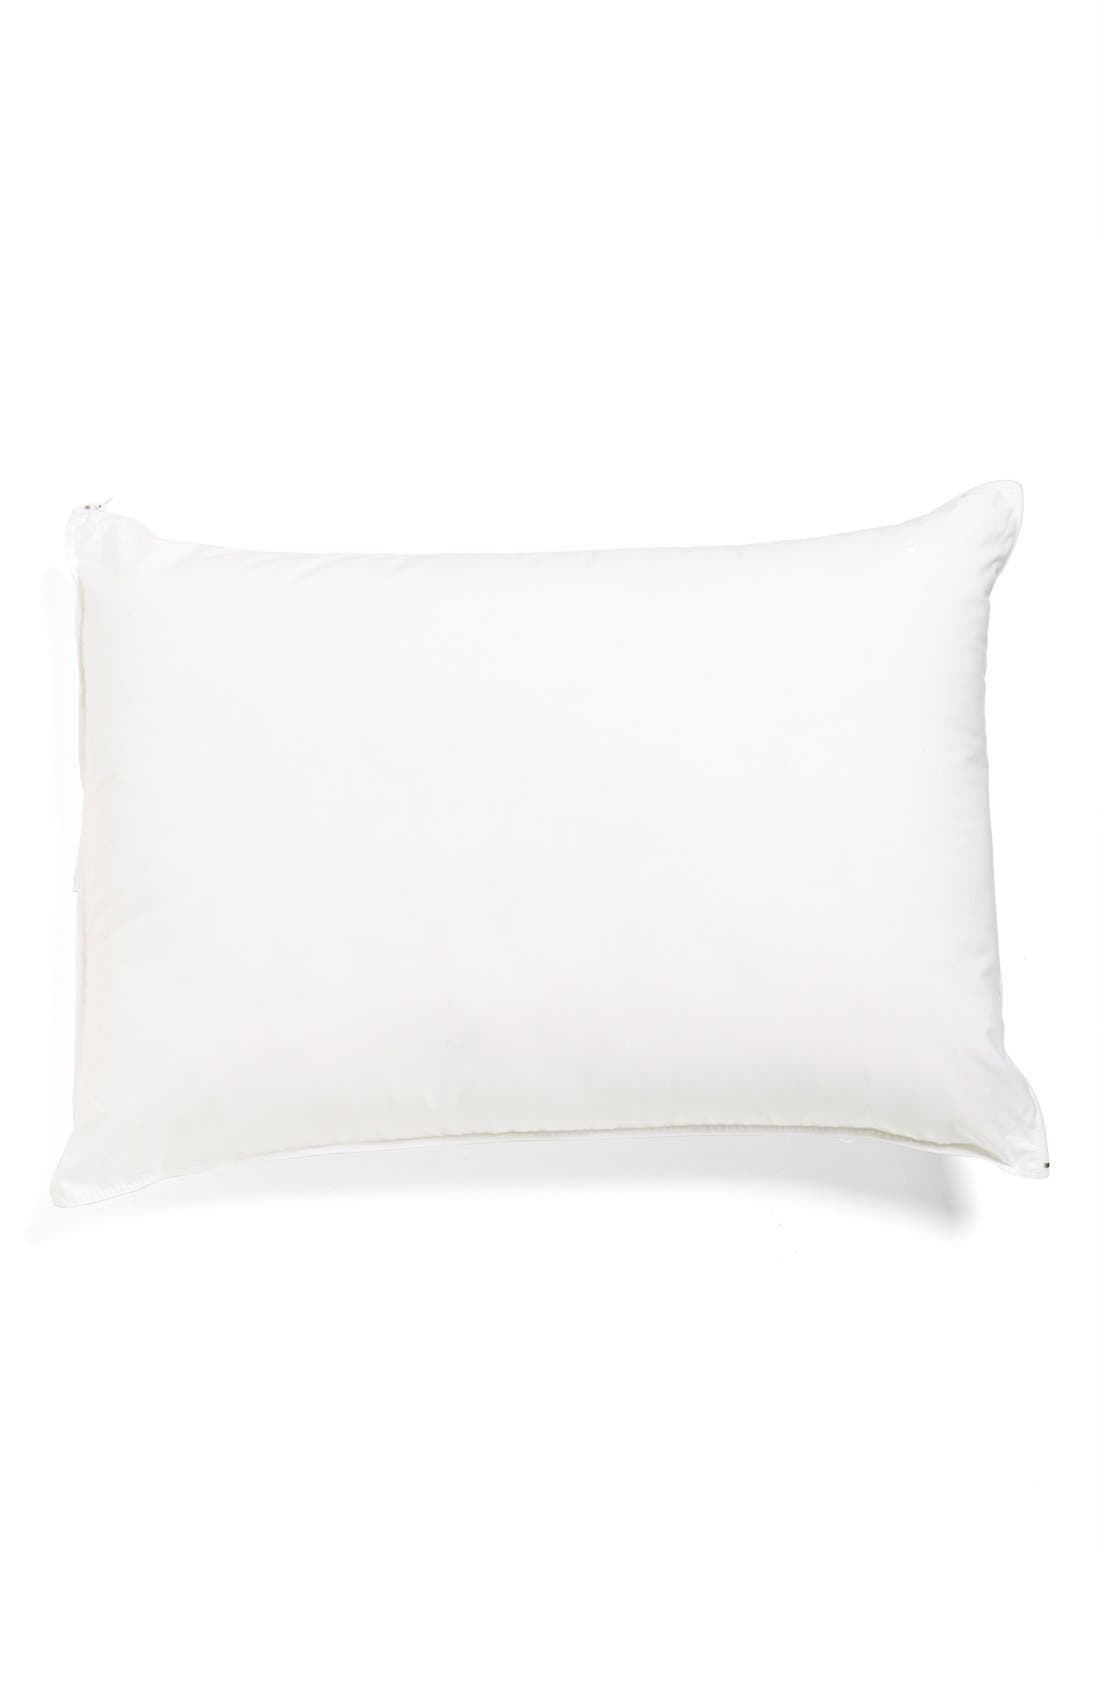 Nordstrom at Home Memory Foam Core Pillow (Buy & Save)